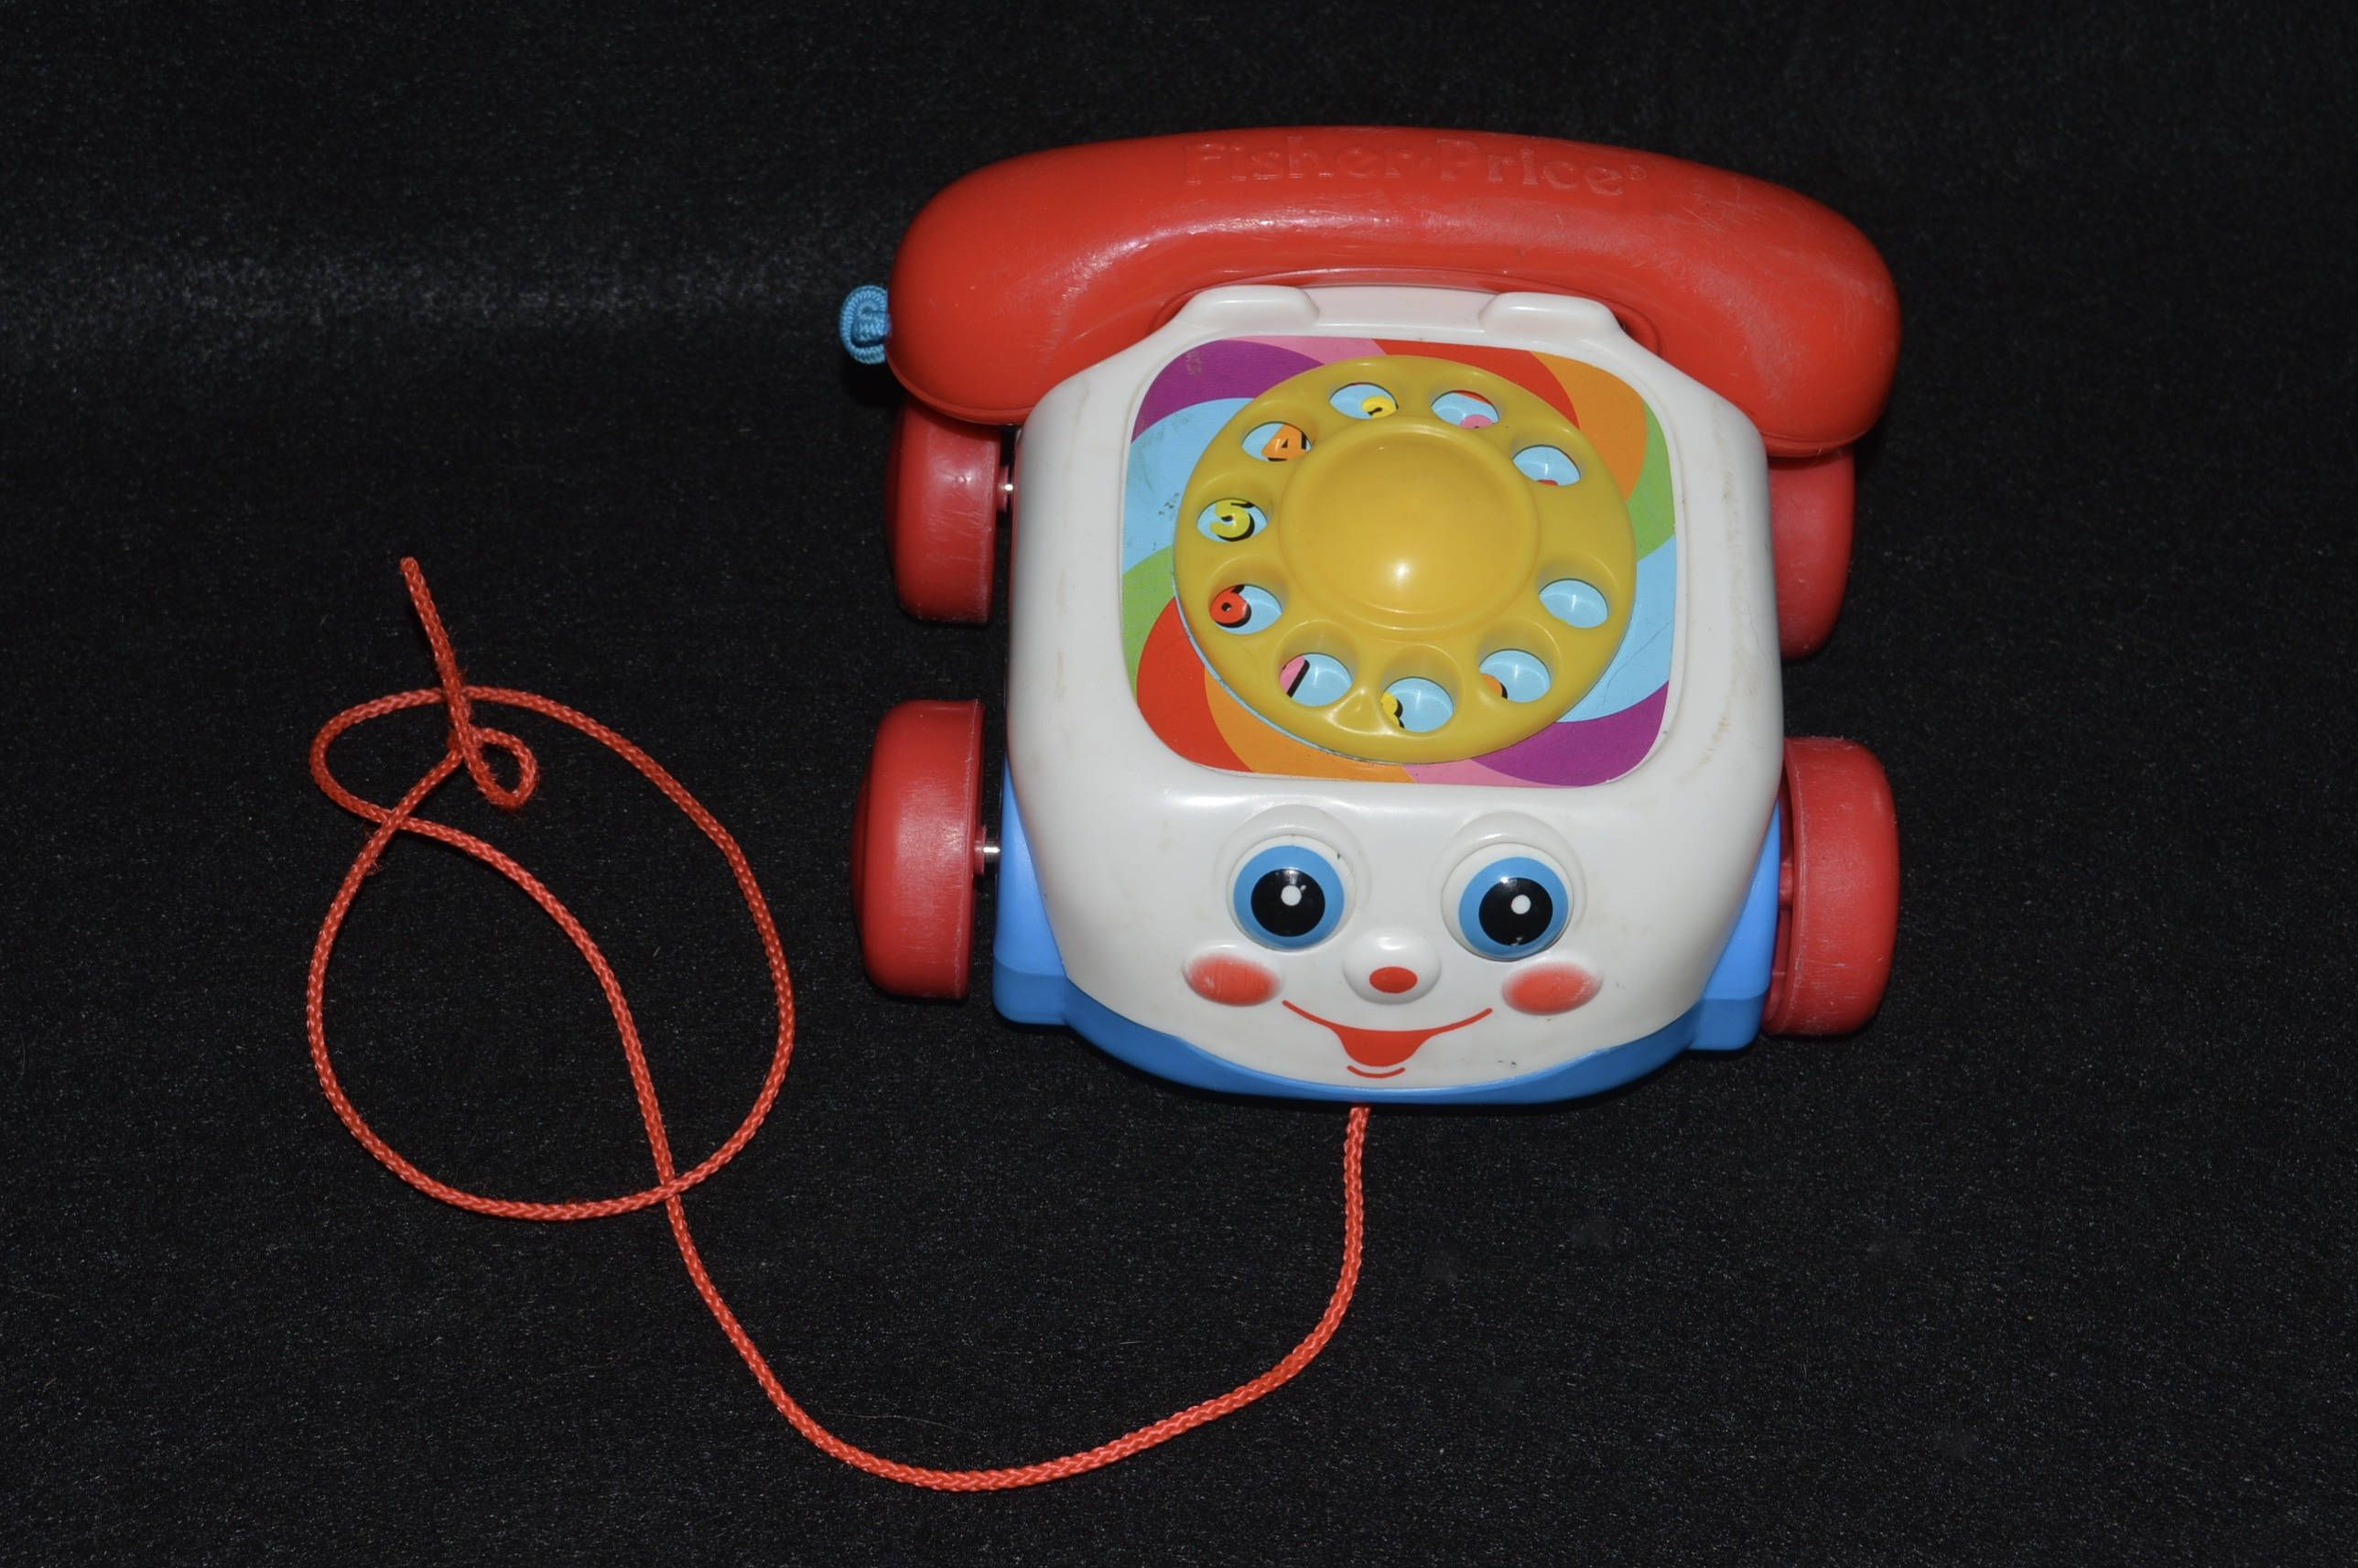 hight resolution of toy phone fisher price chatter box phone telephone toy child s pull toy vintage toys toy rotary phone wheeled phone phone toy by